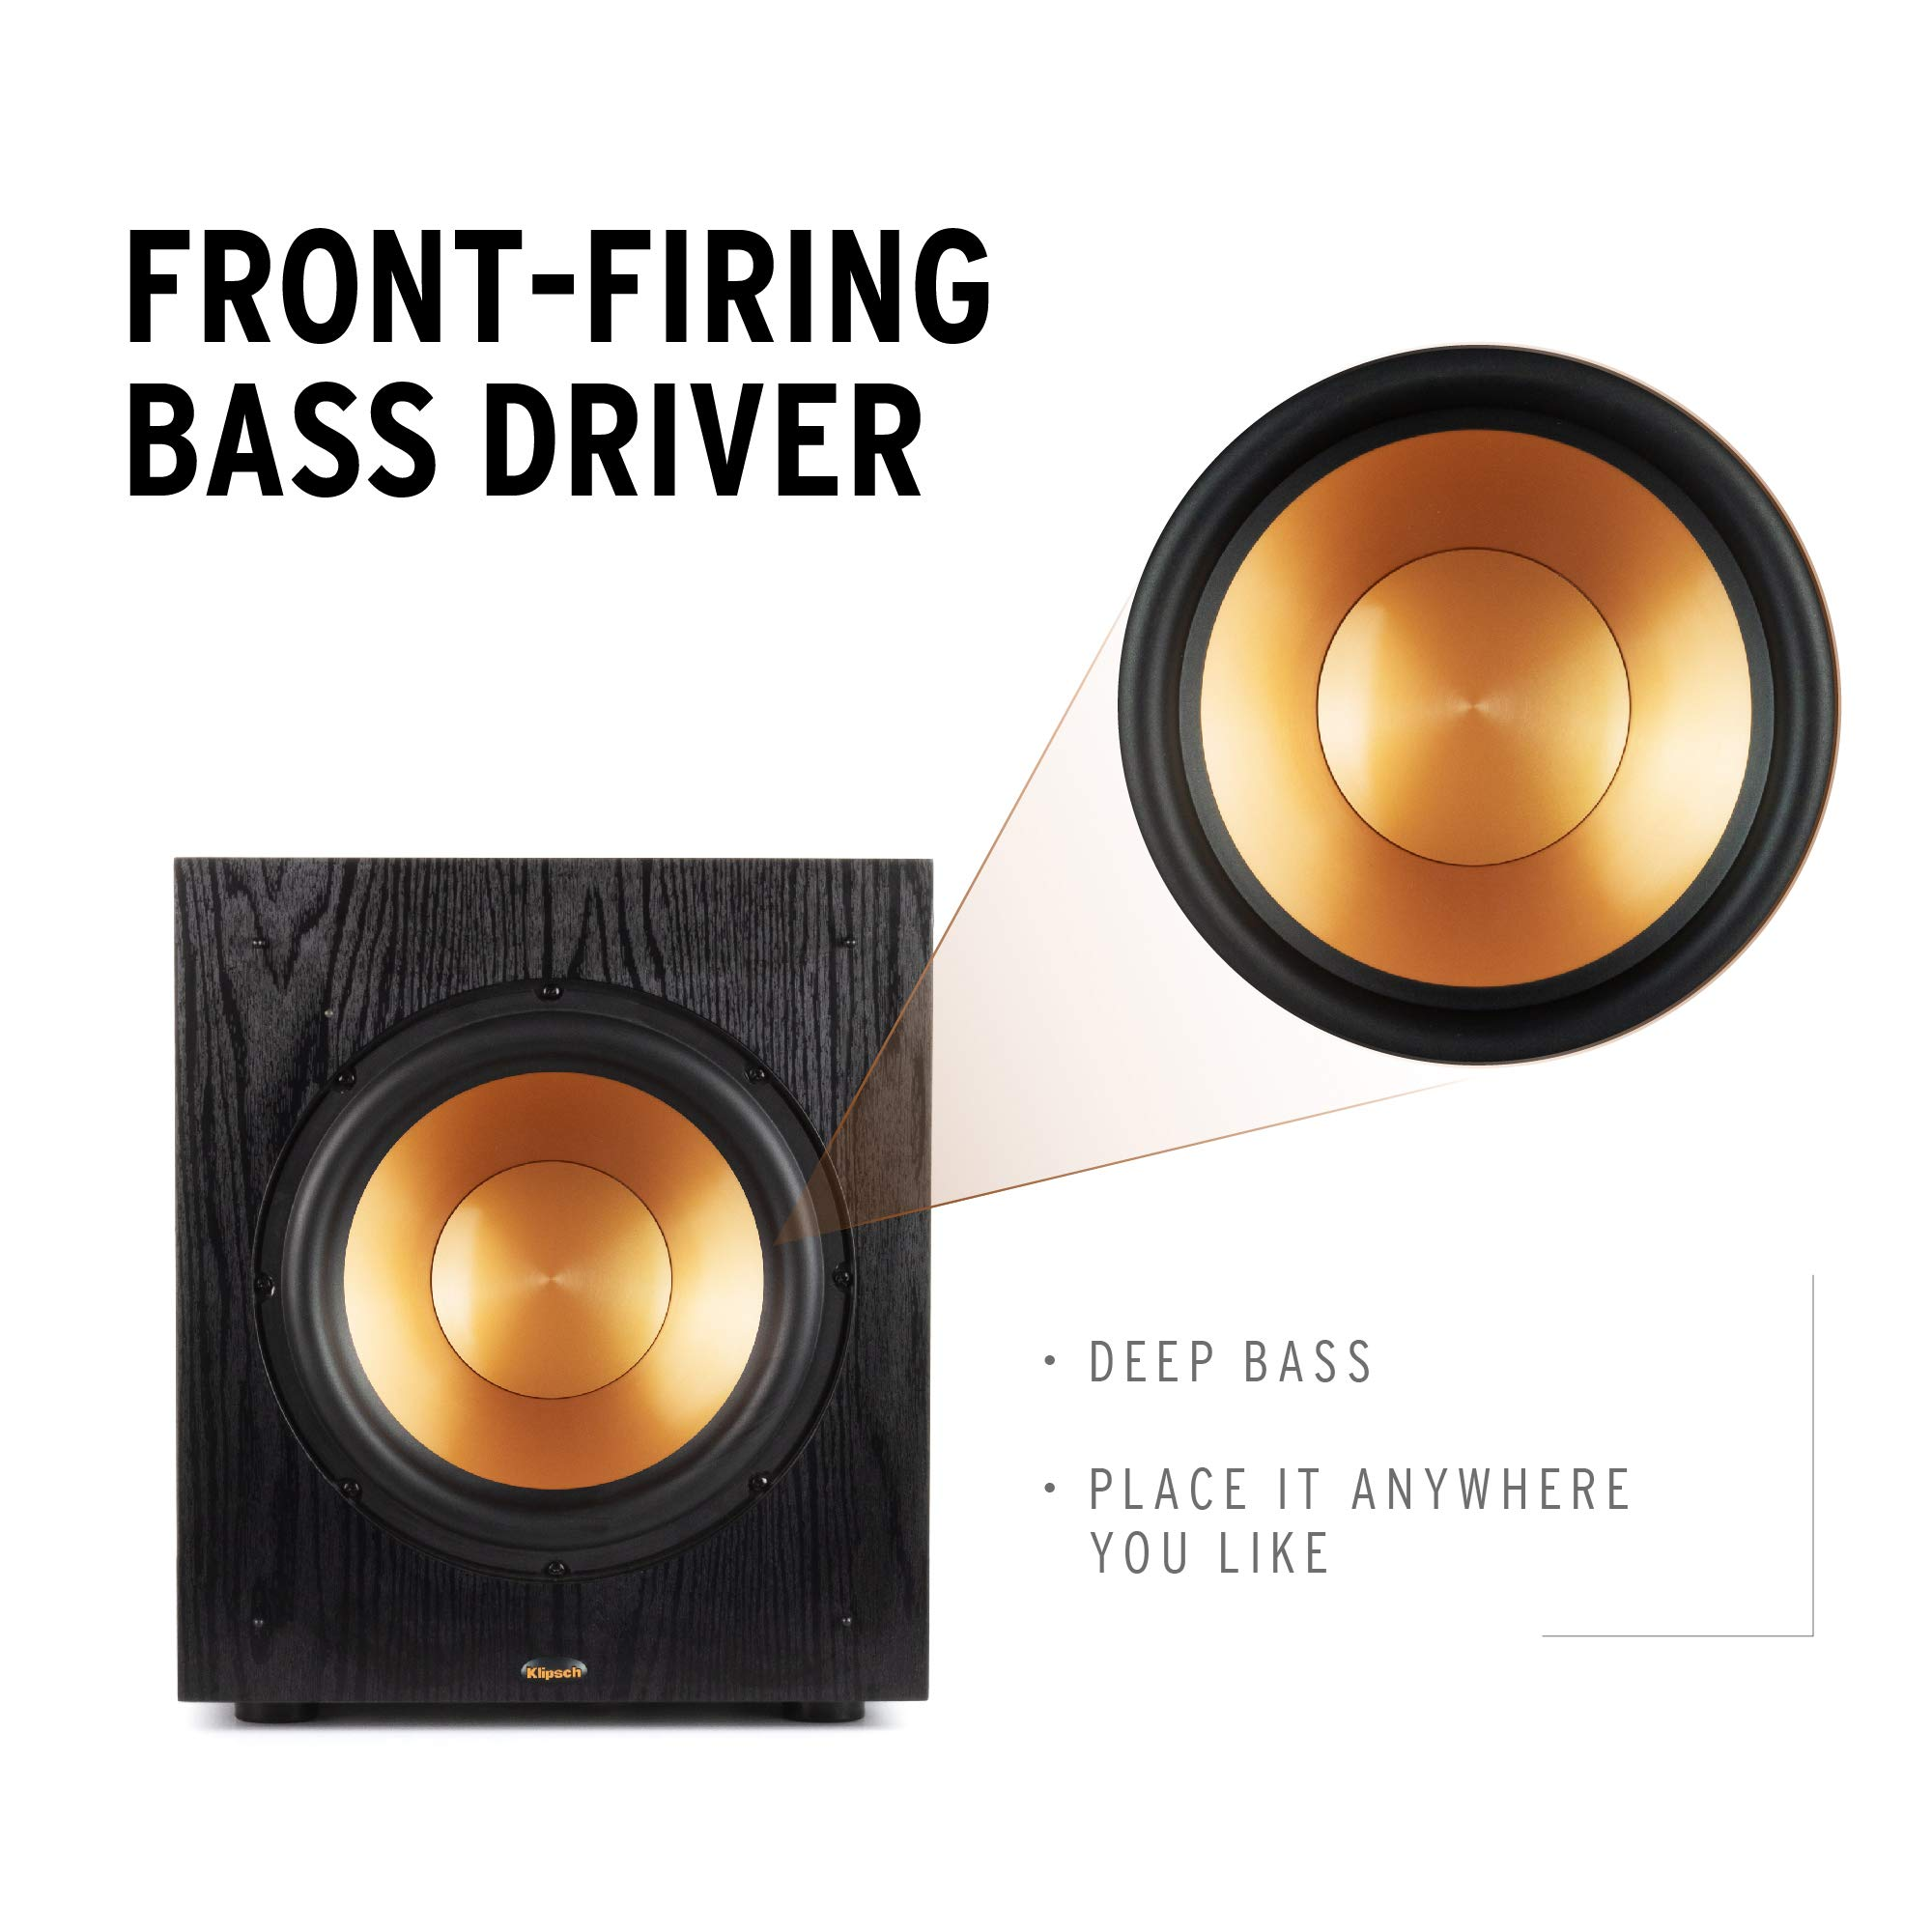 """Klipsch Synergy Black Label Sub-100 10"""" Front-Firing Subwoofer with 150 Watts of continuous power, 300 watts of Dynamic Power, and All-Digital Amplifier for Powerful Home Theater Bass in Black"""